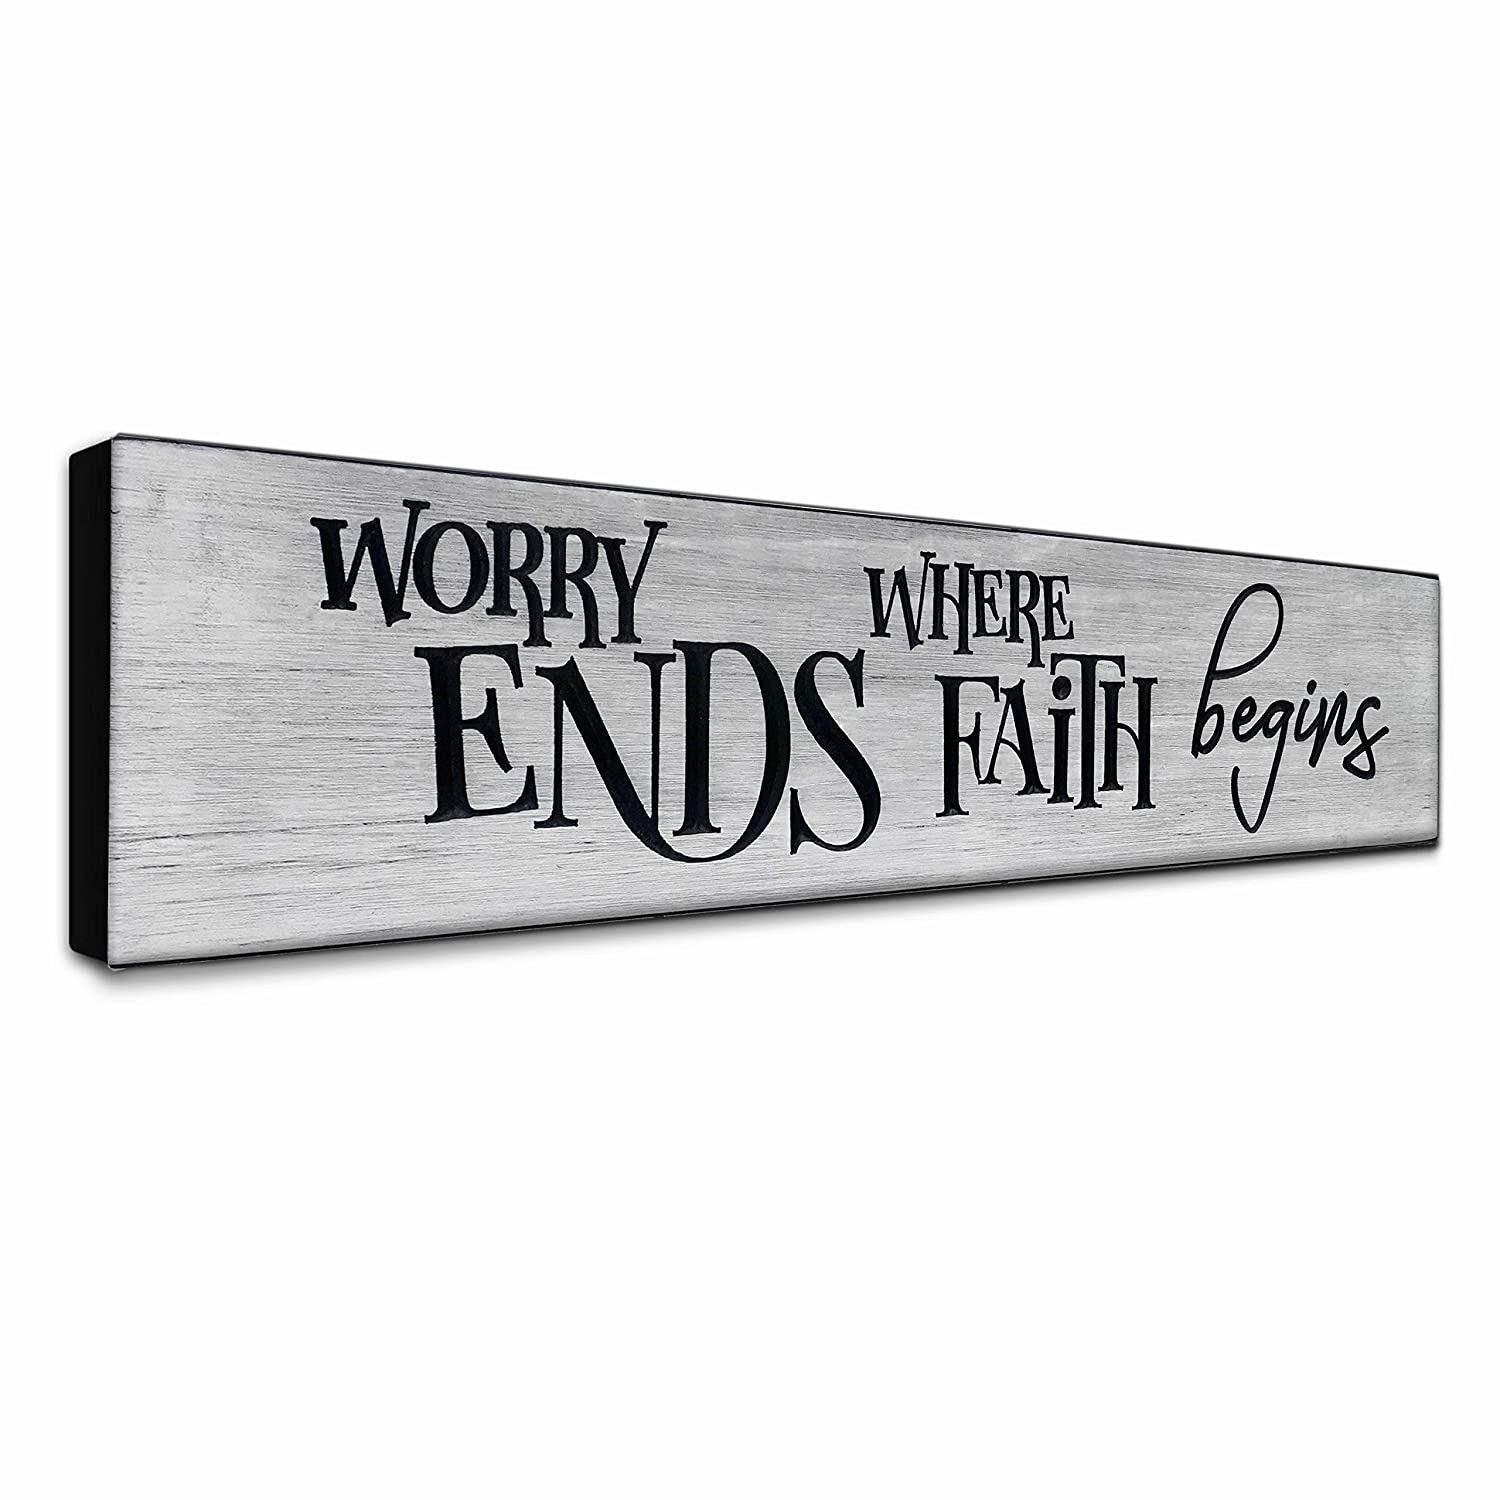 LACOFFIO Inspirational Wall Art Decor - Worry Ends Where Faith Begins Rustic Christian Scripture Kitchen Plaque - Motivational Religious Quotes Wooden Sign for Women